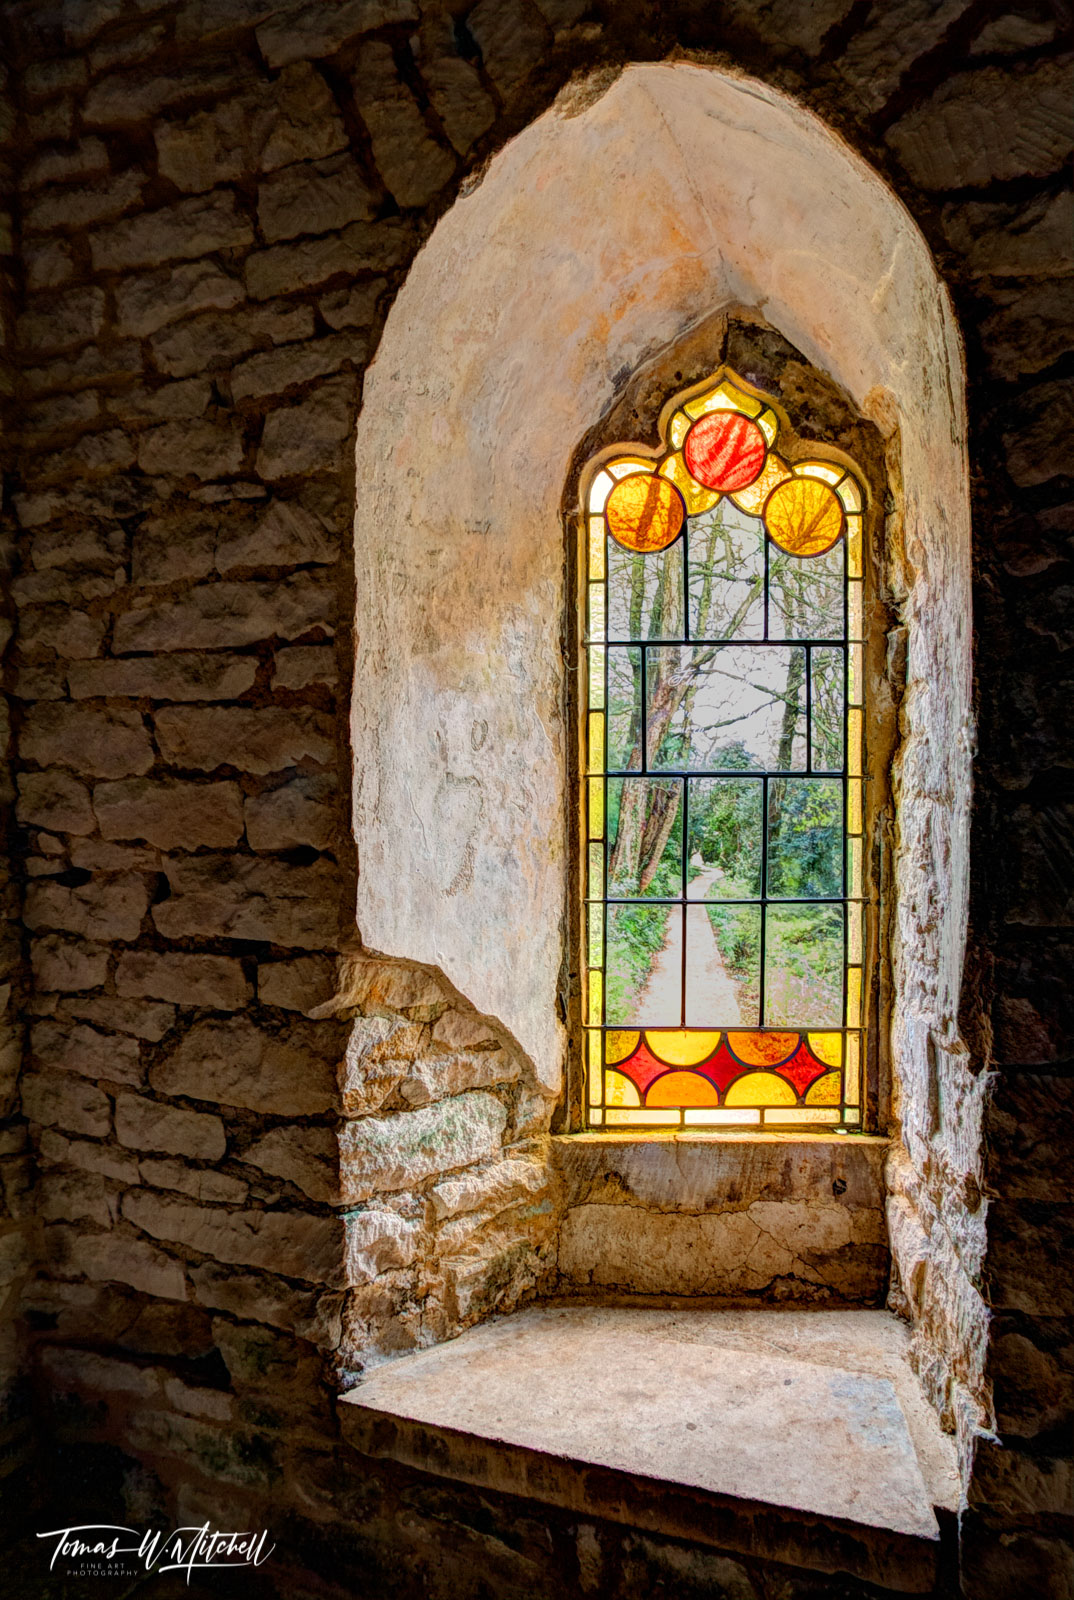 limited edition, museum grade, fine art, prints, painswick, england, window, stained glass, photographing, gardens, building, gloucester, Rococo Garden, photo